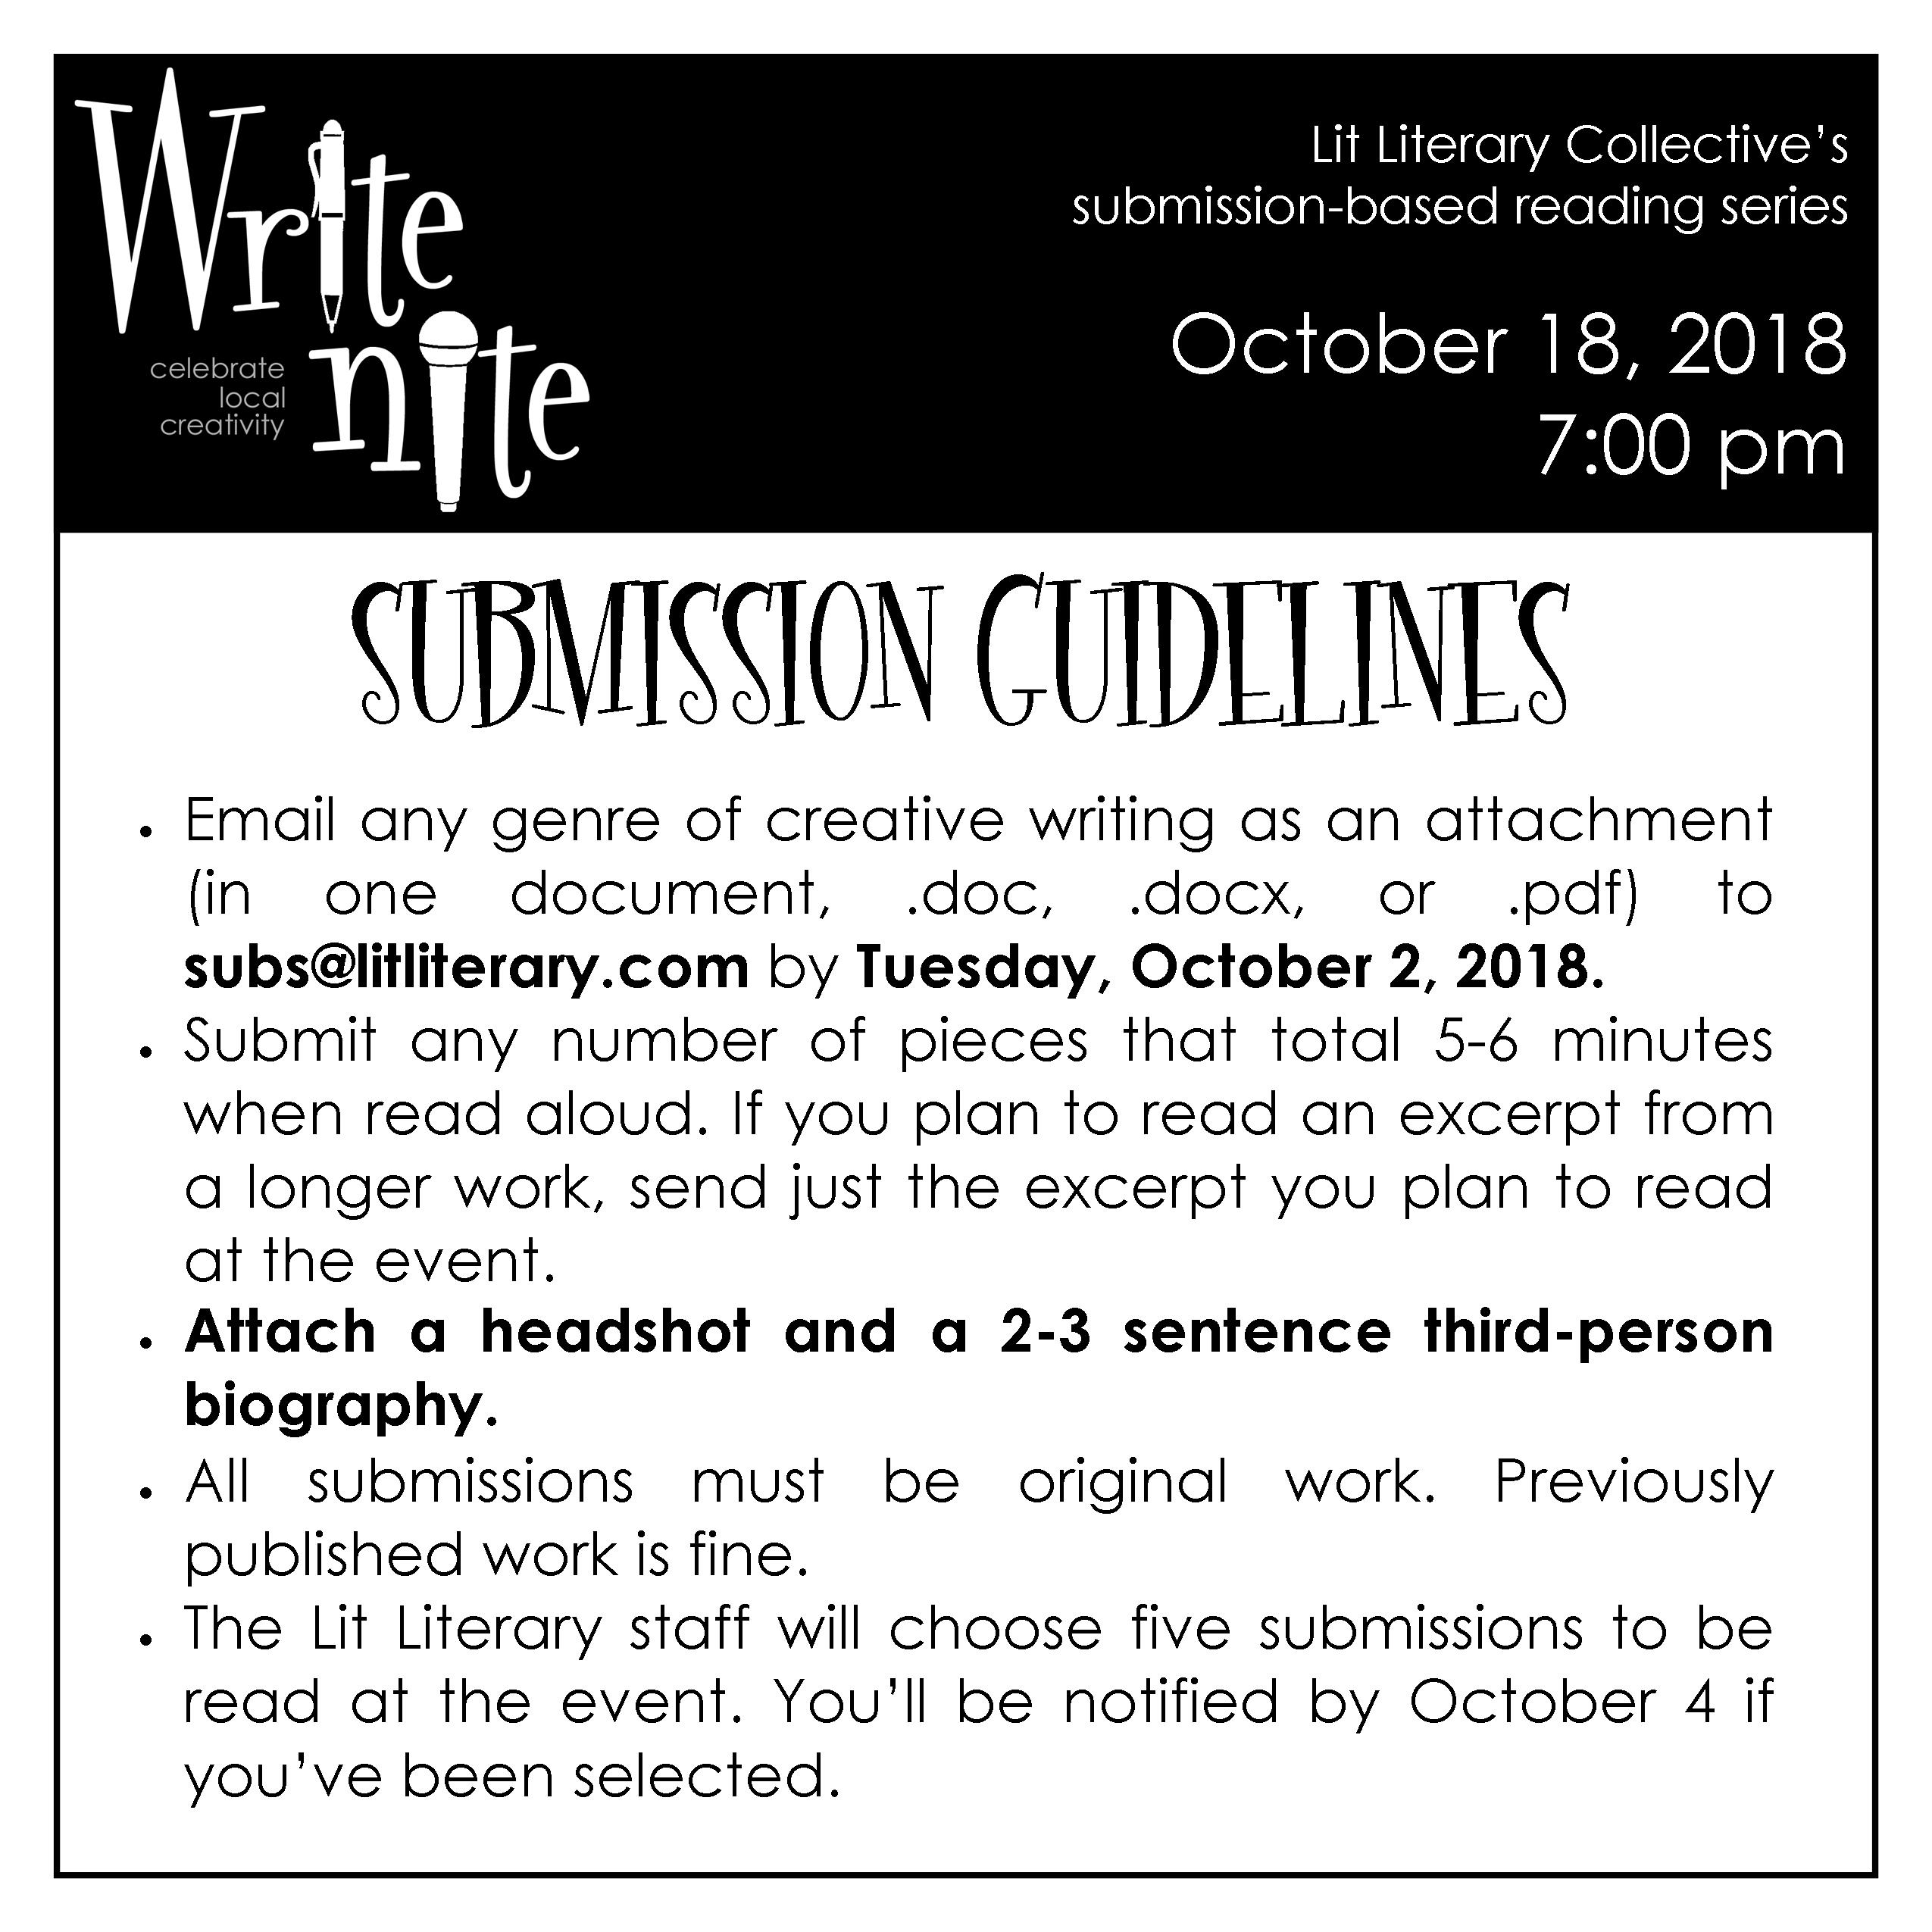 Submission Guidelines 10-18-18